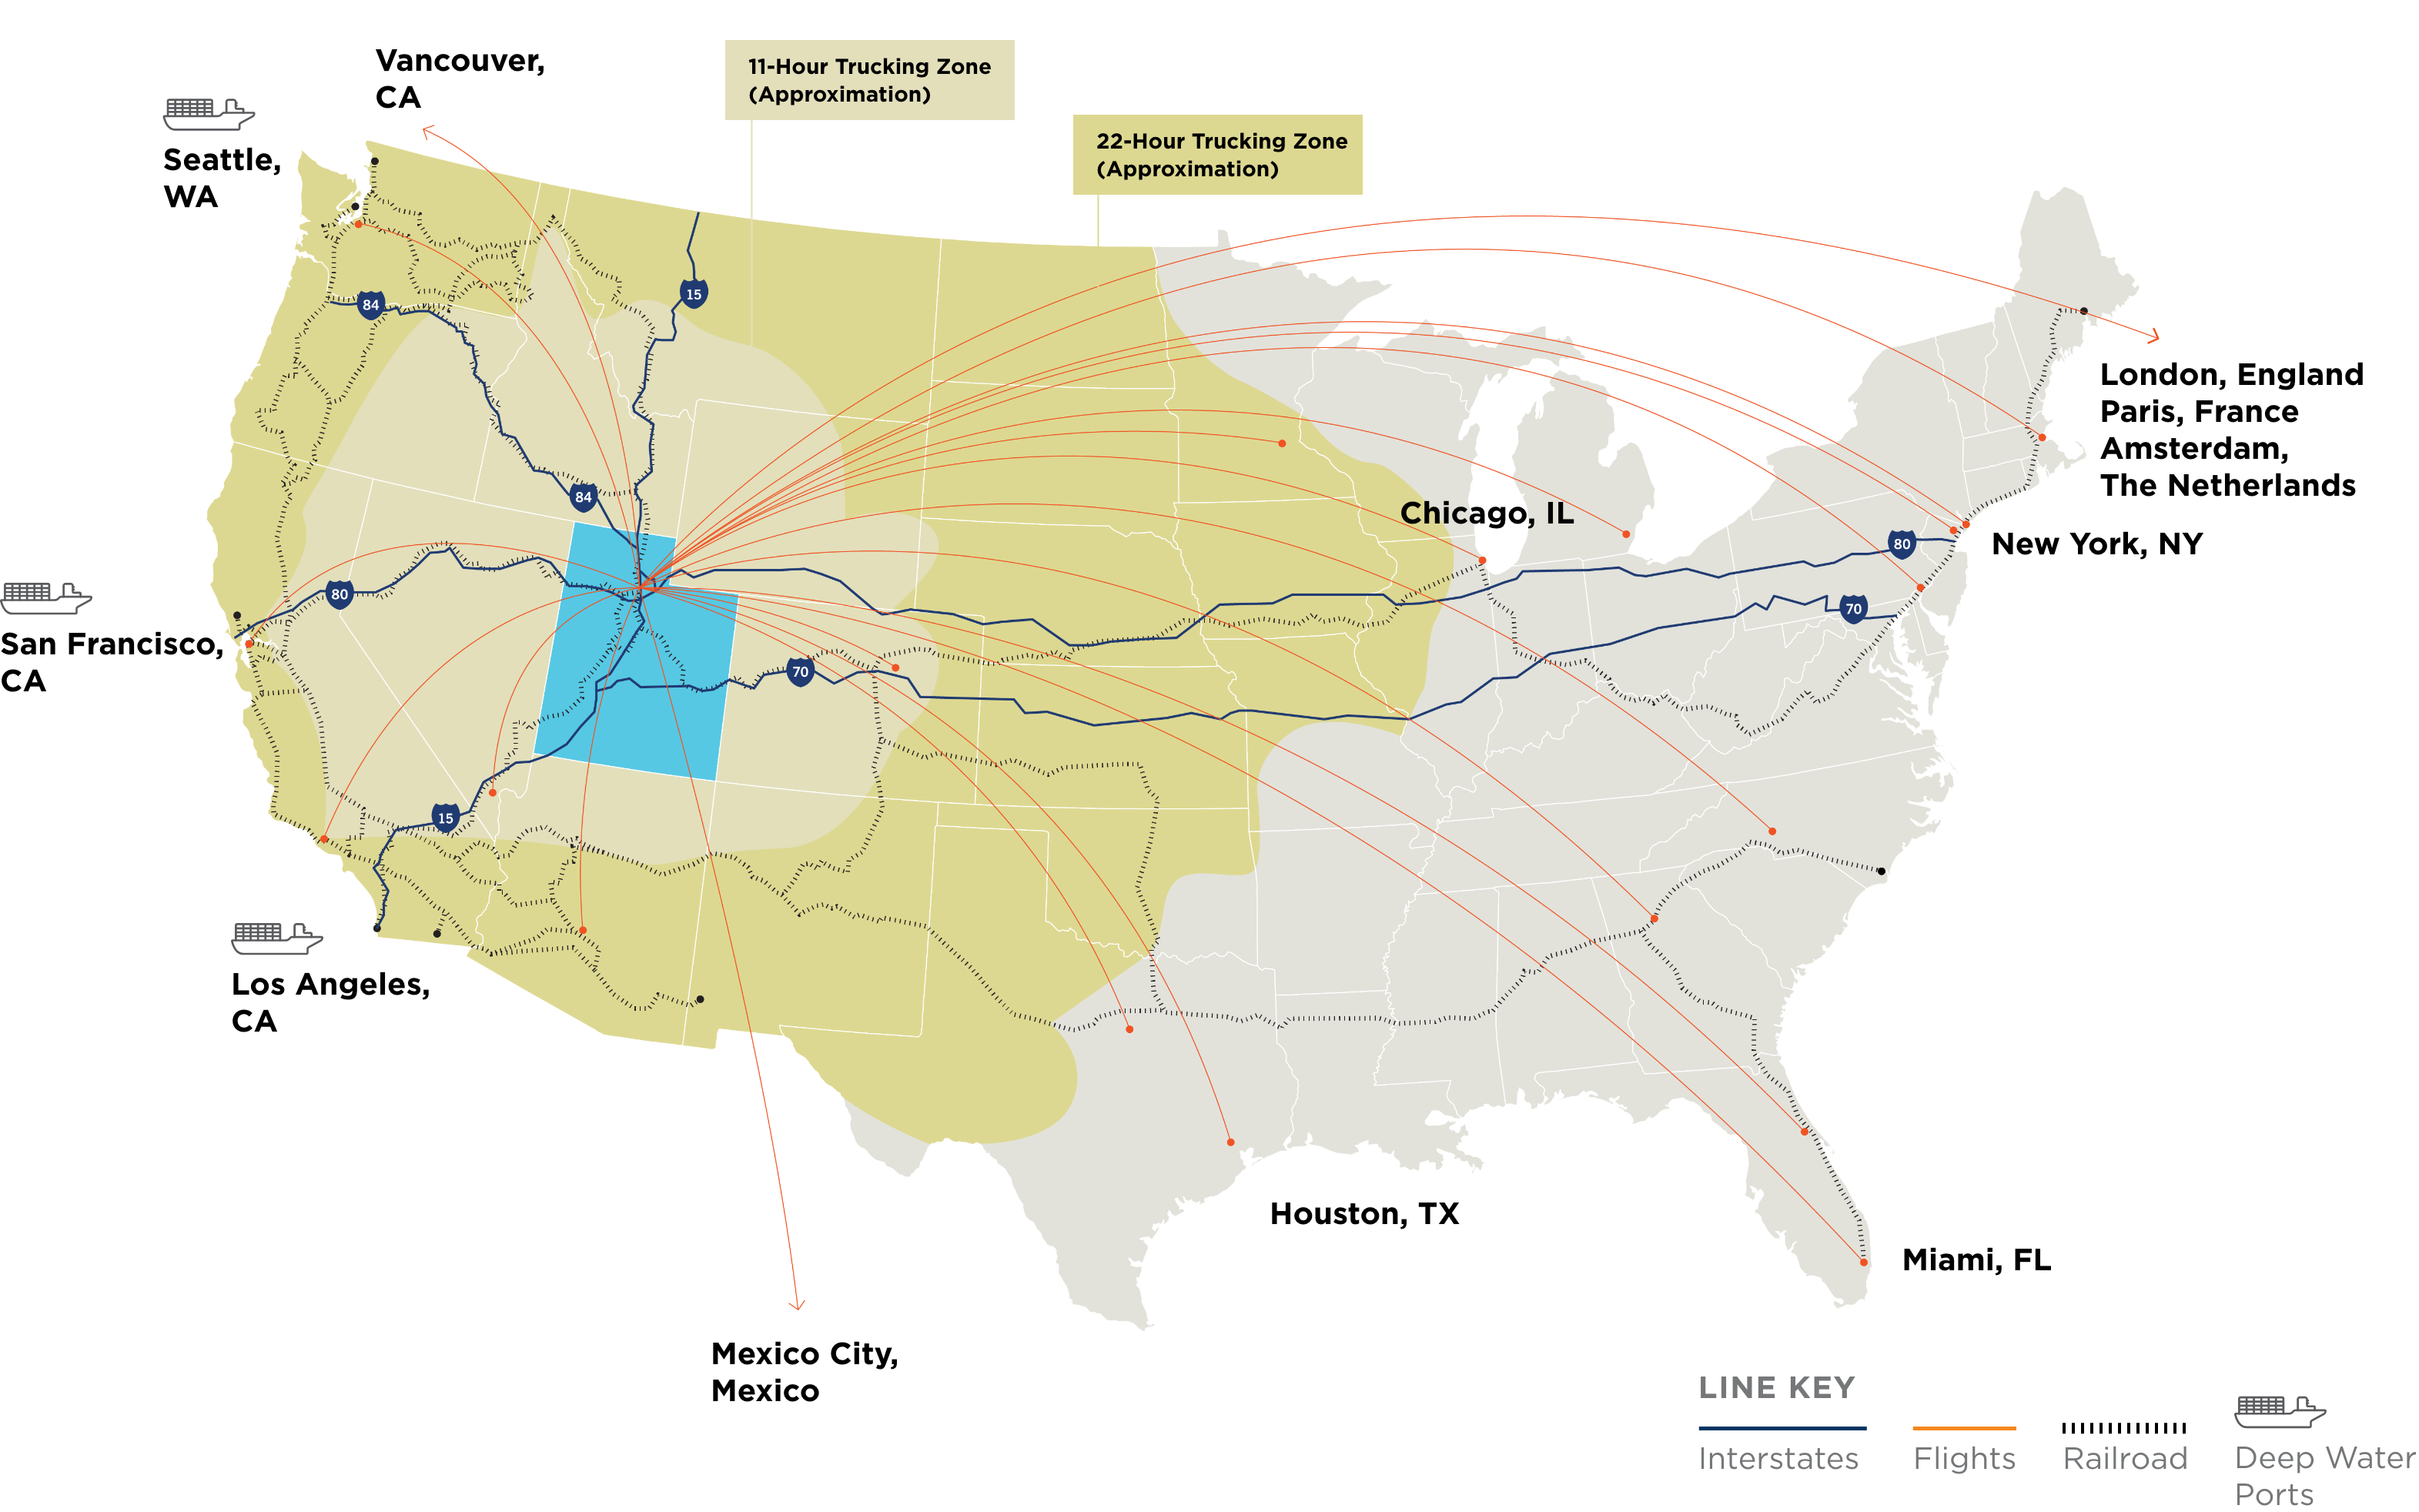 A map of the United States showing times to reach the state of Utah.